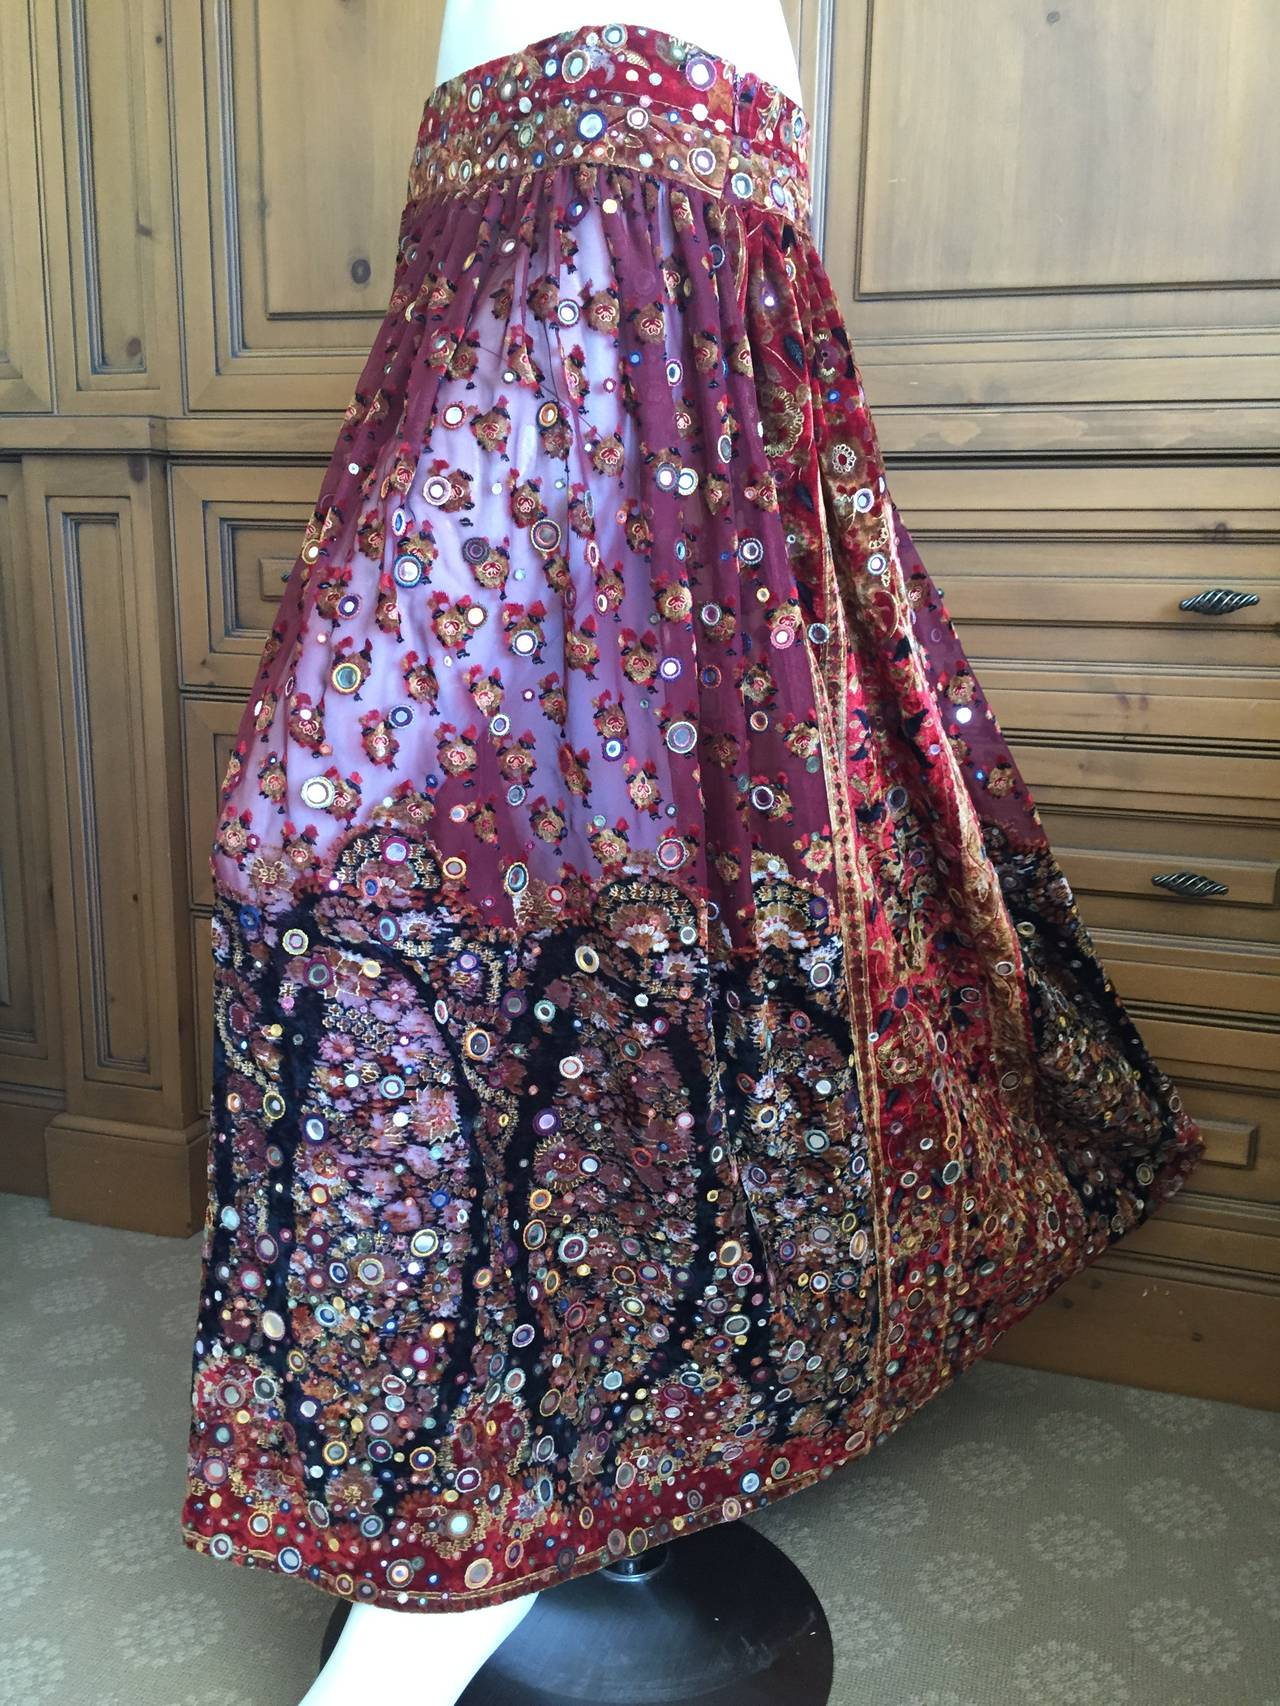 Oscar de la Renta Vintage Boho Gypsy Skirt with Mirrors 5